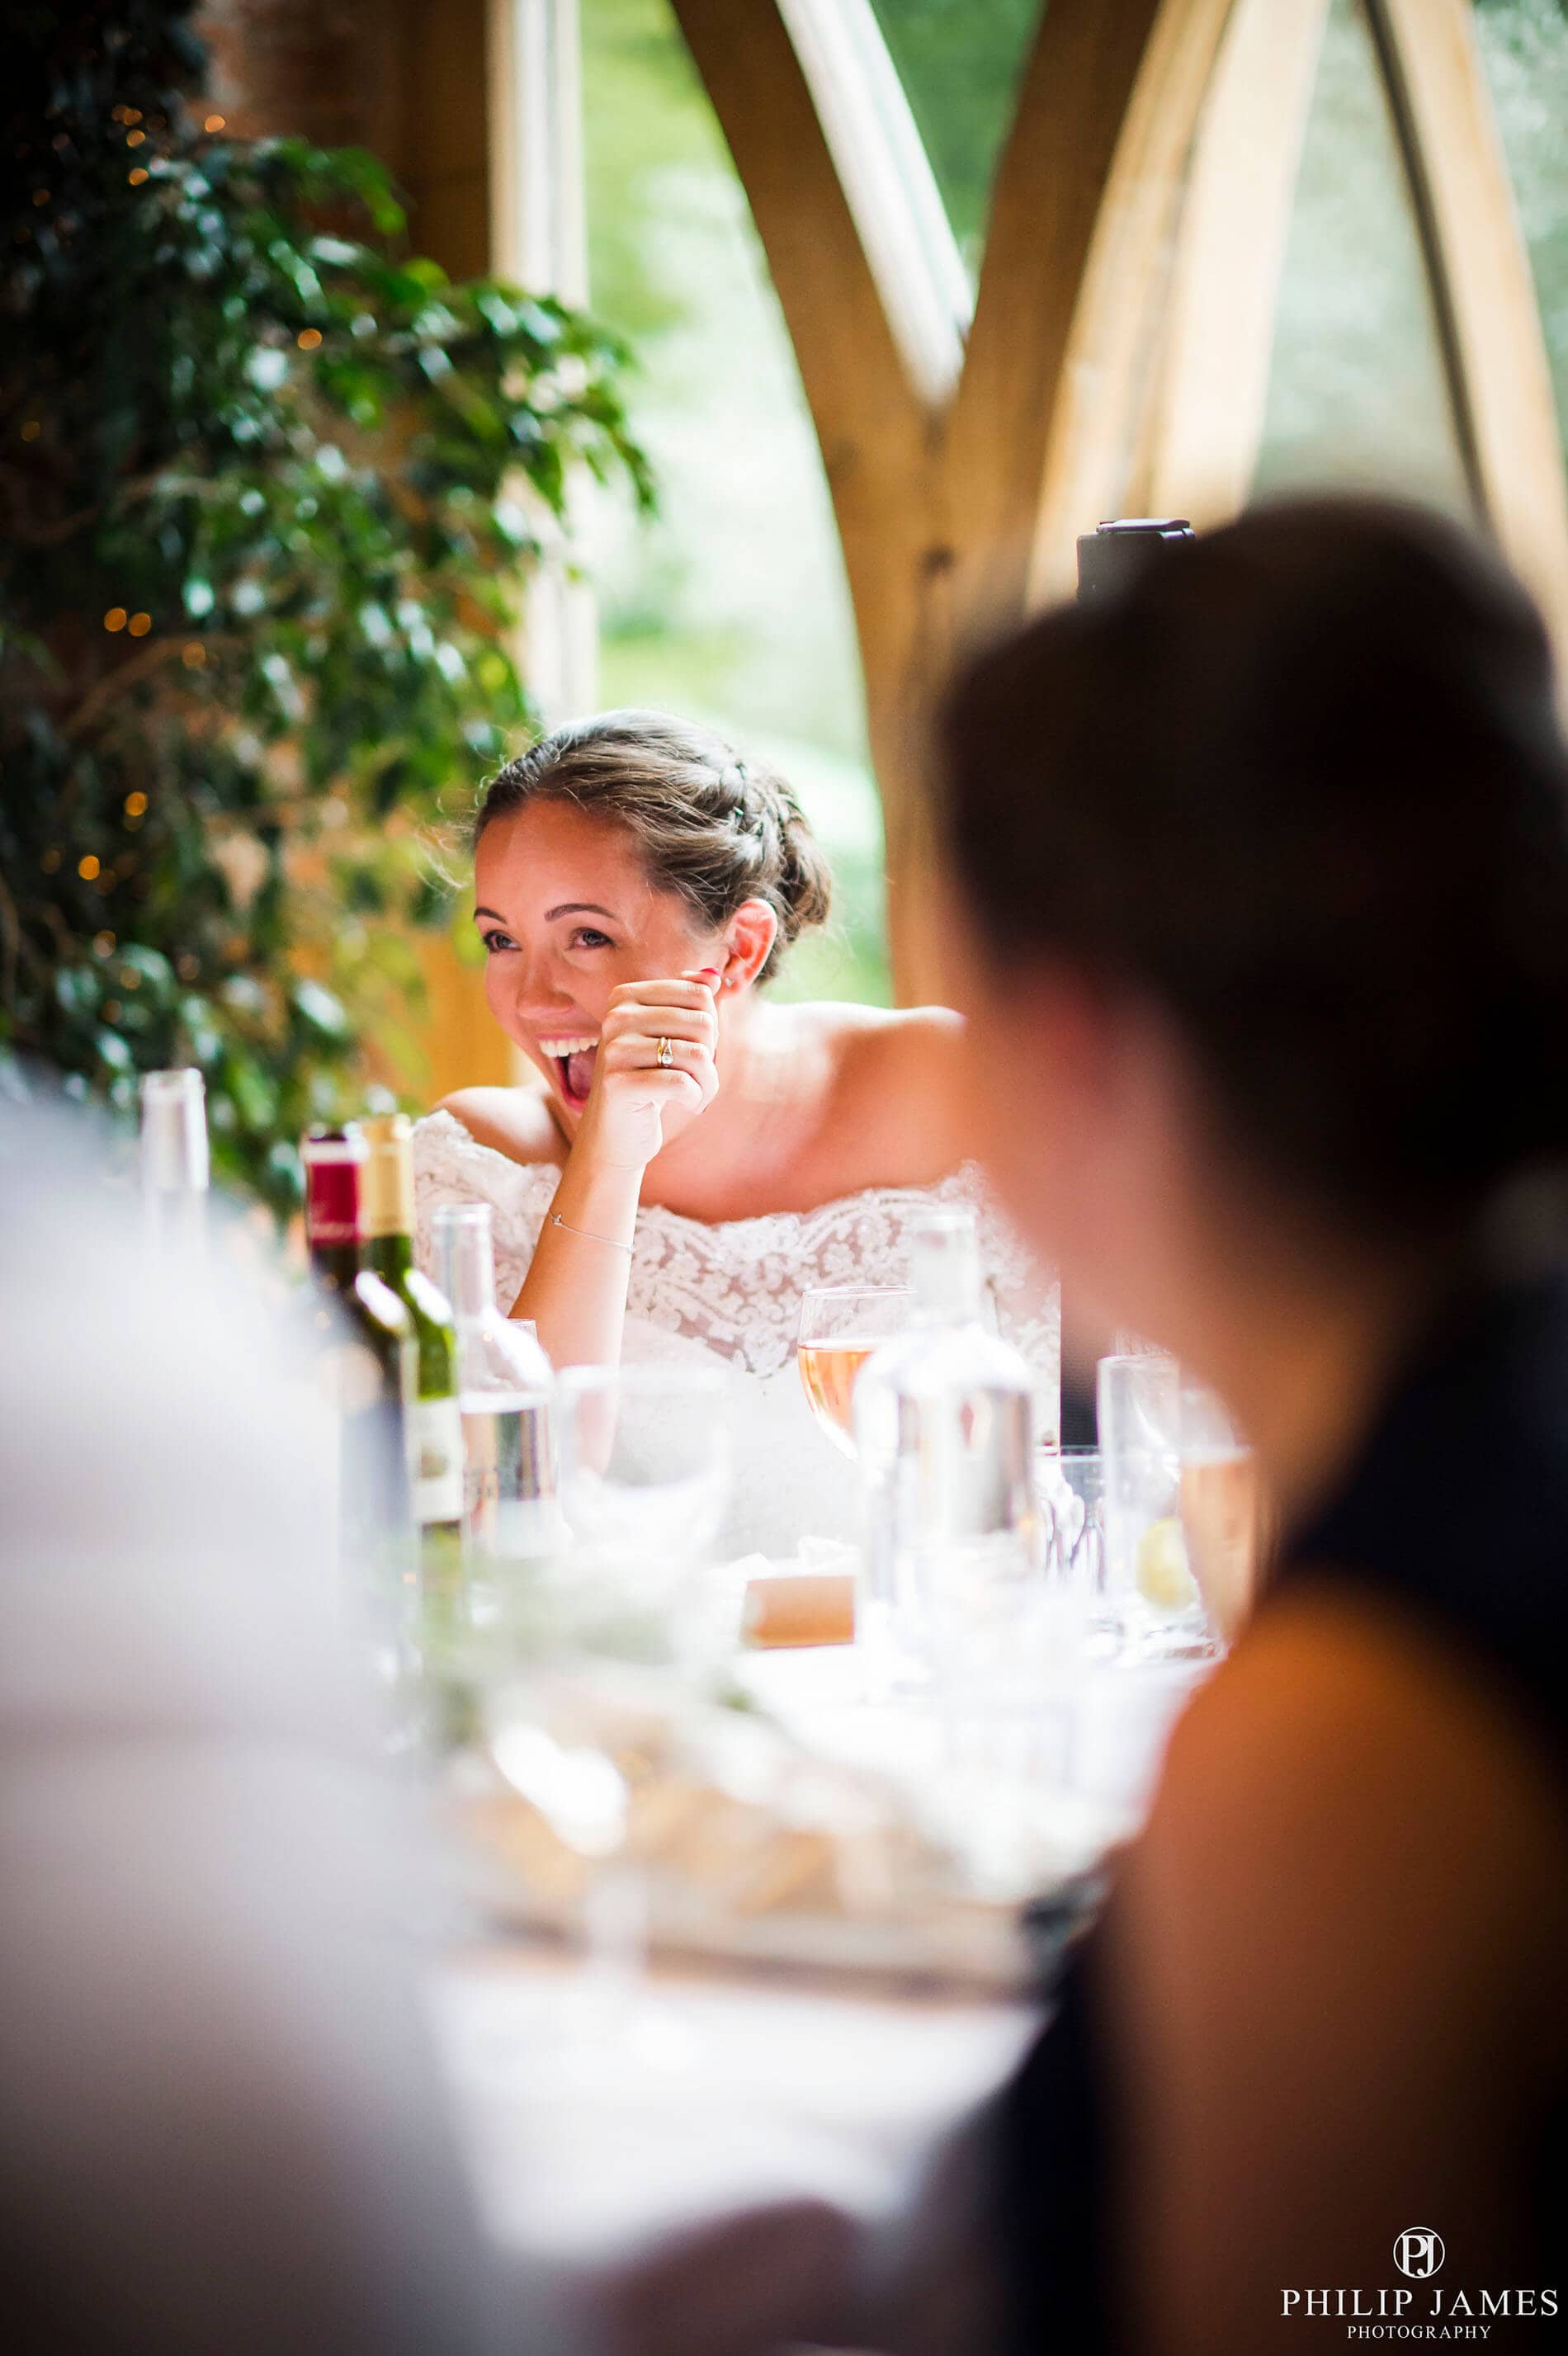 Cripps Wedding Photographer - Philip James covers Birmingham, The West Midlands, Solihull and Destination weddings. Wedding photography Birmingham is my passion